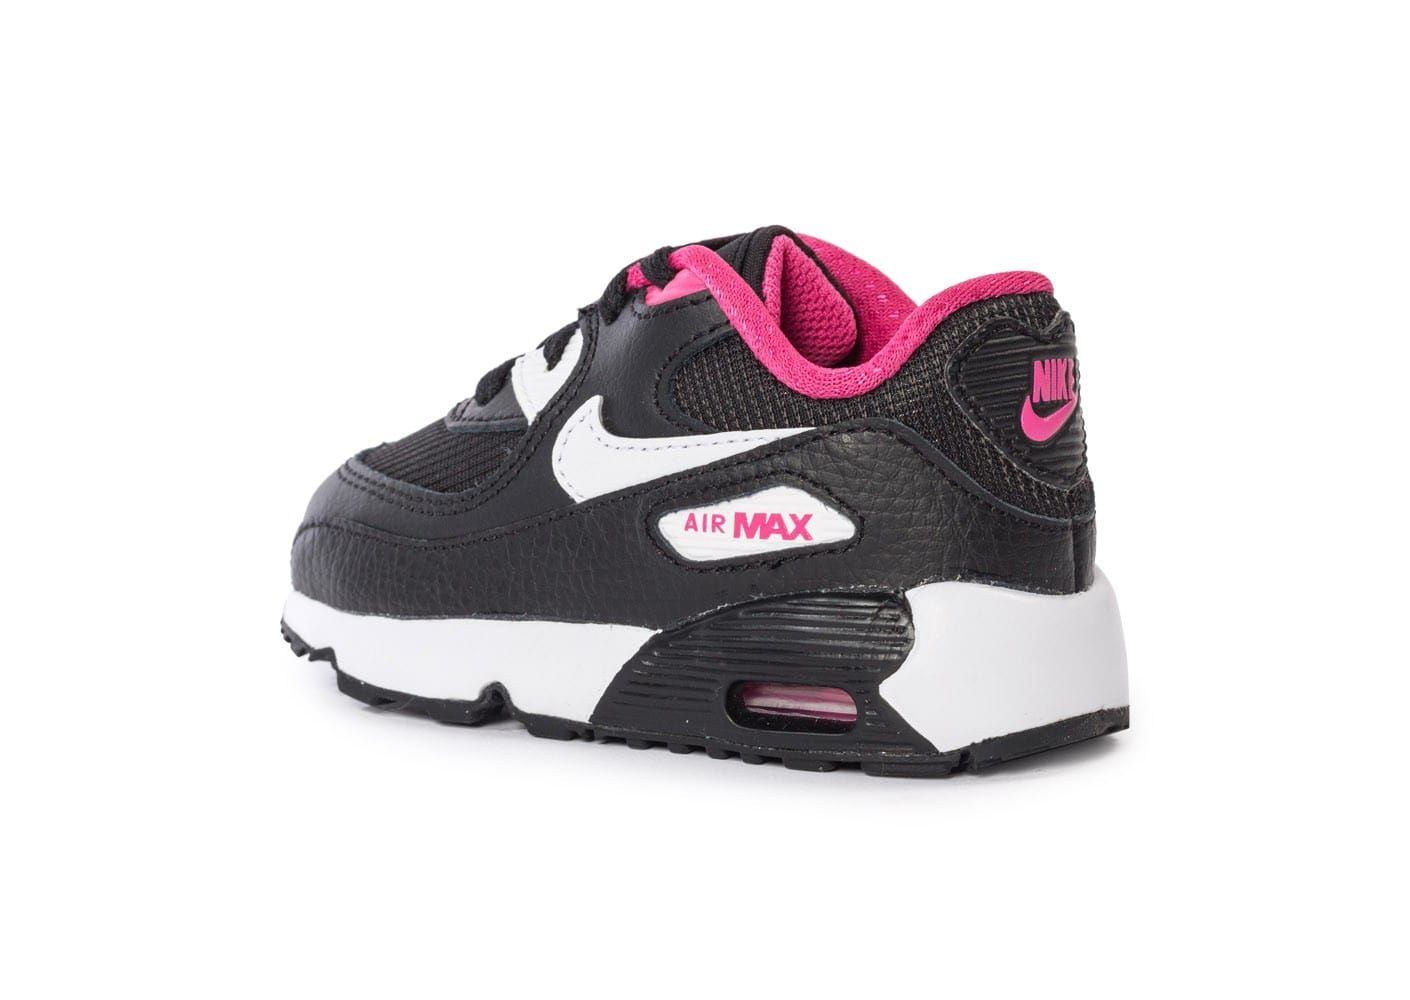 nike air max 90 mesh b b noire et rose chaussures toutes les baskets sold es chausport. Black Bedroom Furniture Sets. Home Design Ideas